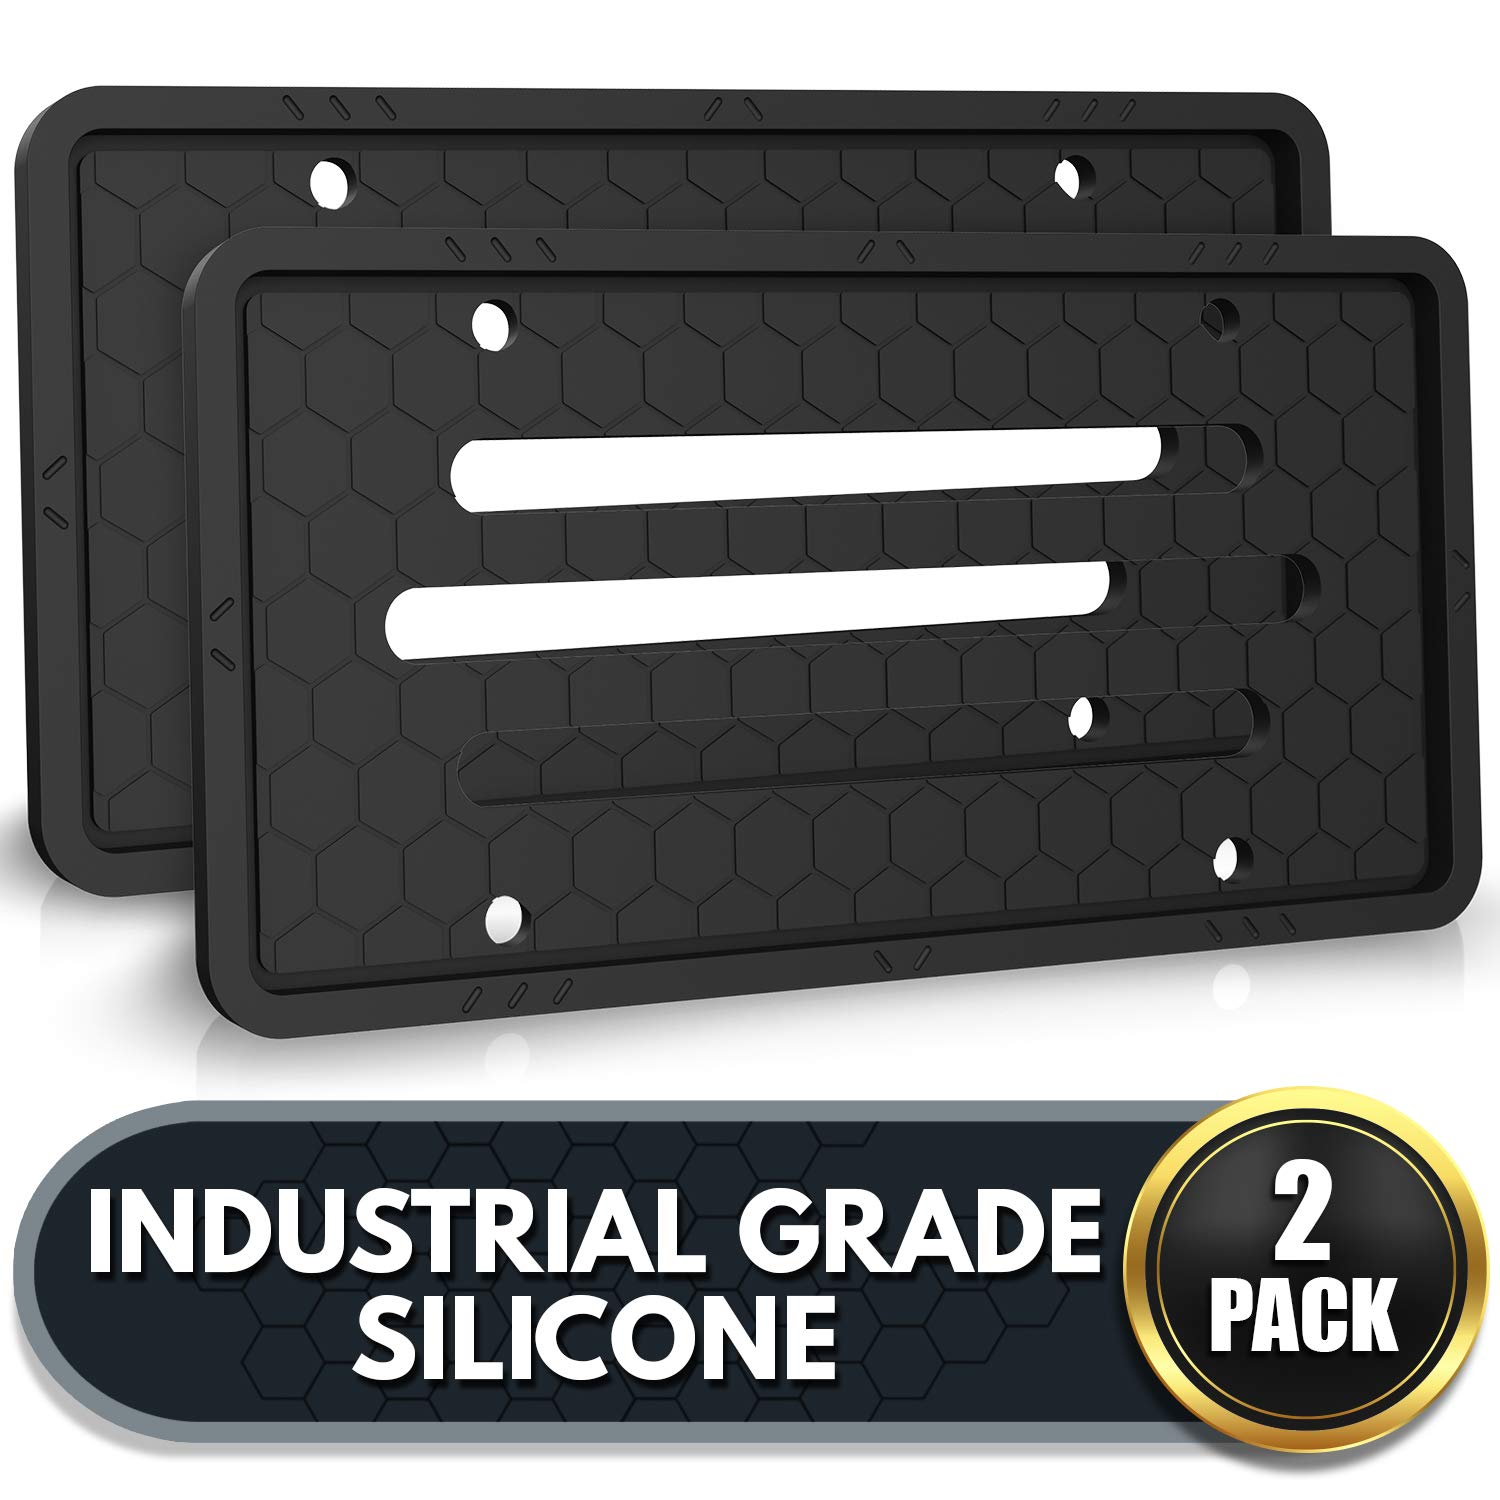 Rattle-Proof Flawless Industrial Grade Silicone License Plate Holder Black Set of 2 Weatherproof and Rust-Proof Black Silicone License Plate Frames License Plate Frame 2 Pack Scratch Free